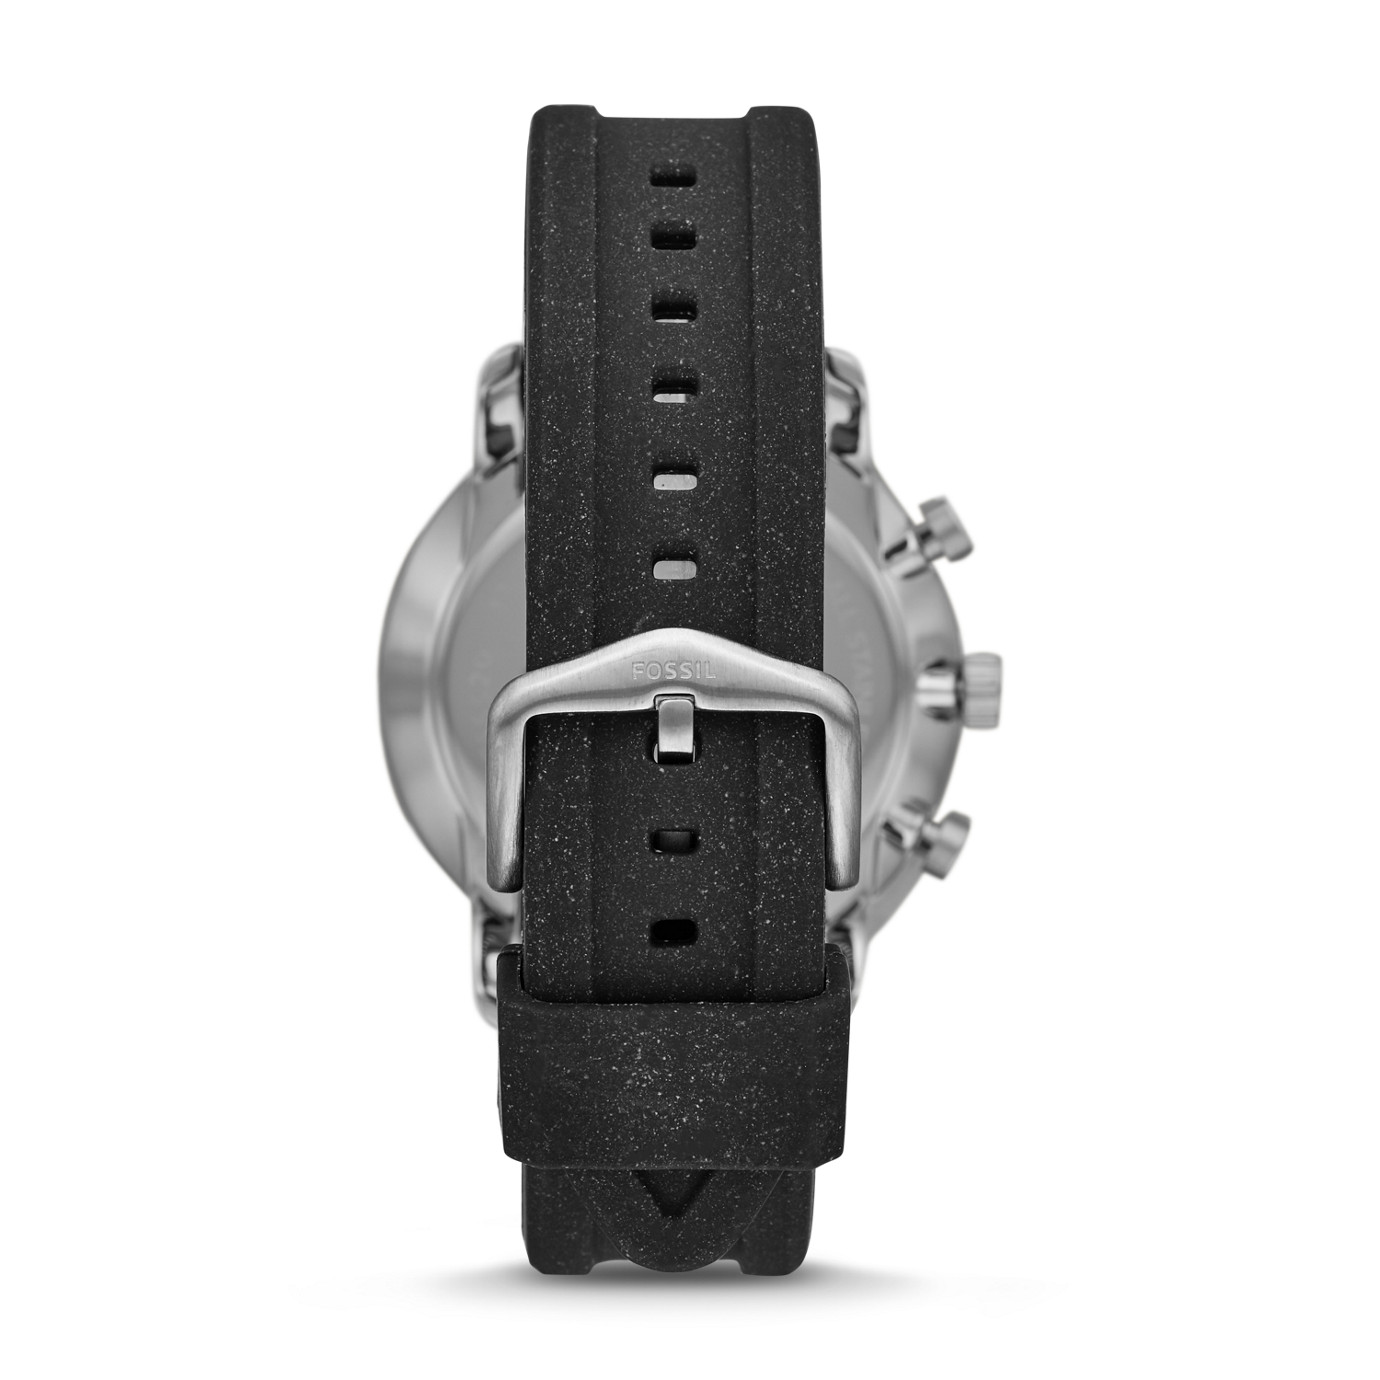 Goodwin Chronograph Black Silicone Watch